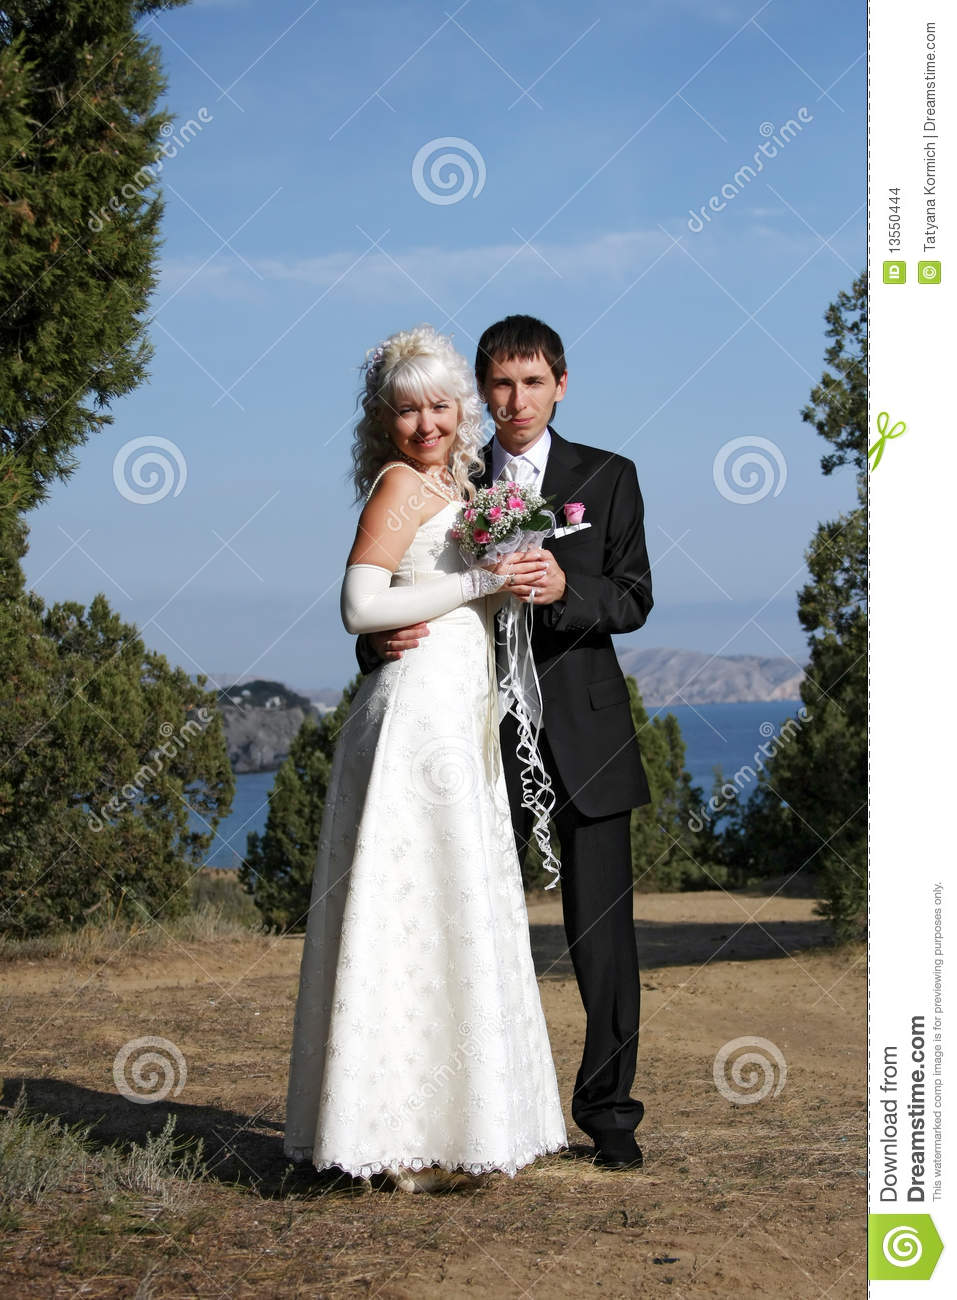 More similar stock images of happy newly married couple